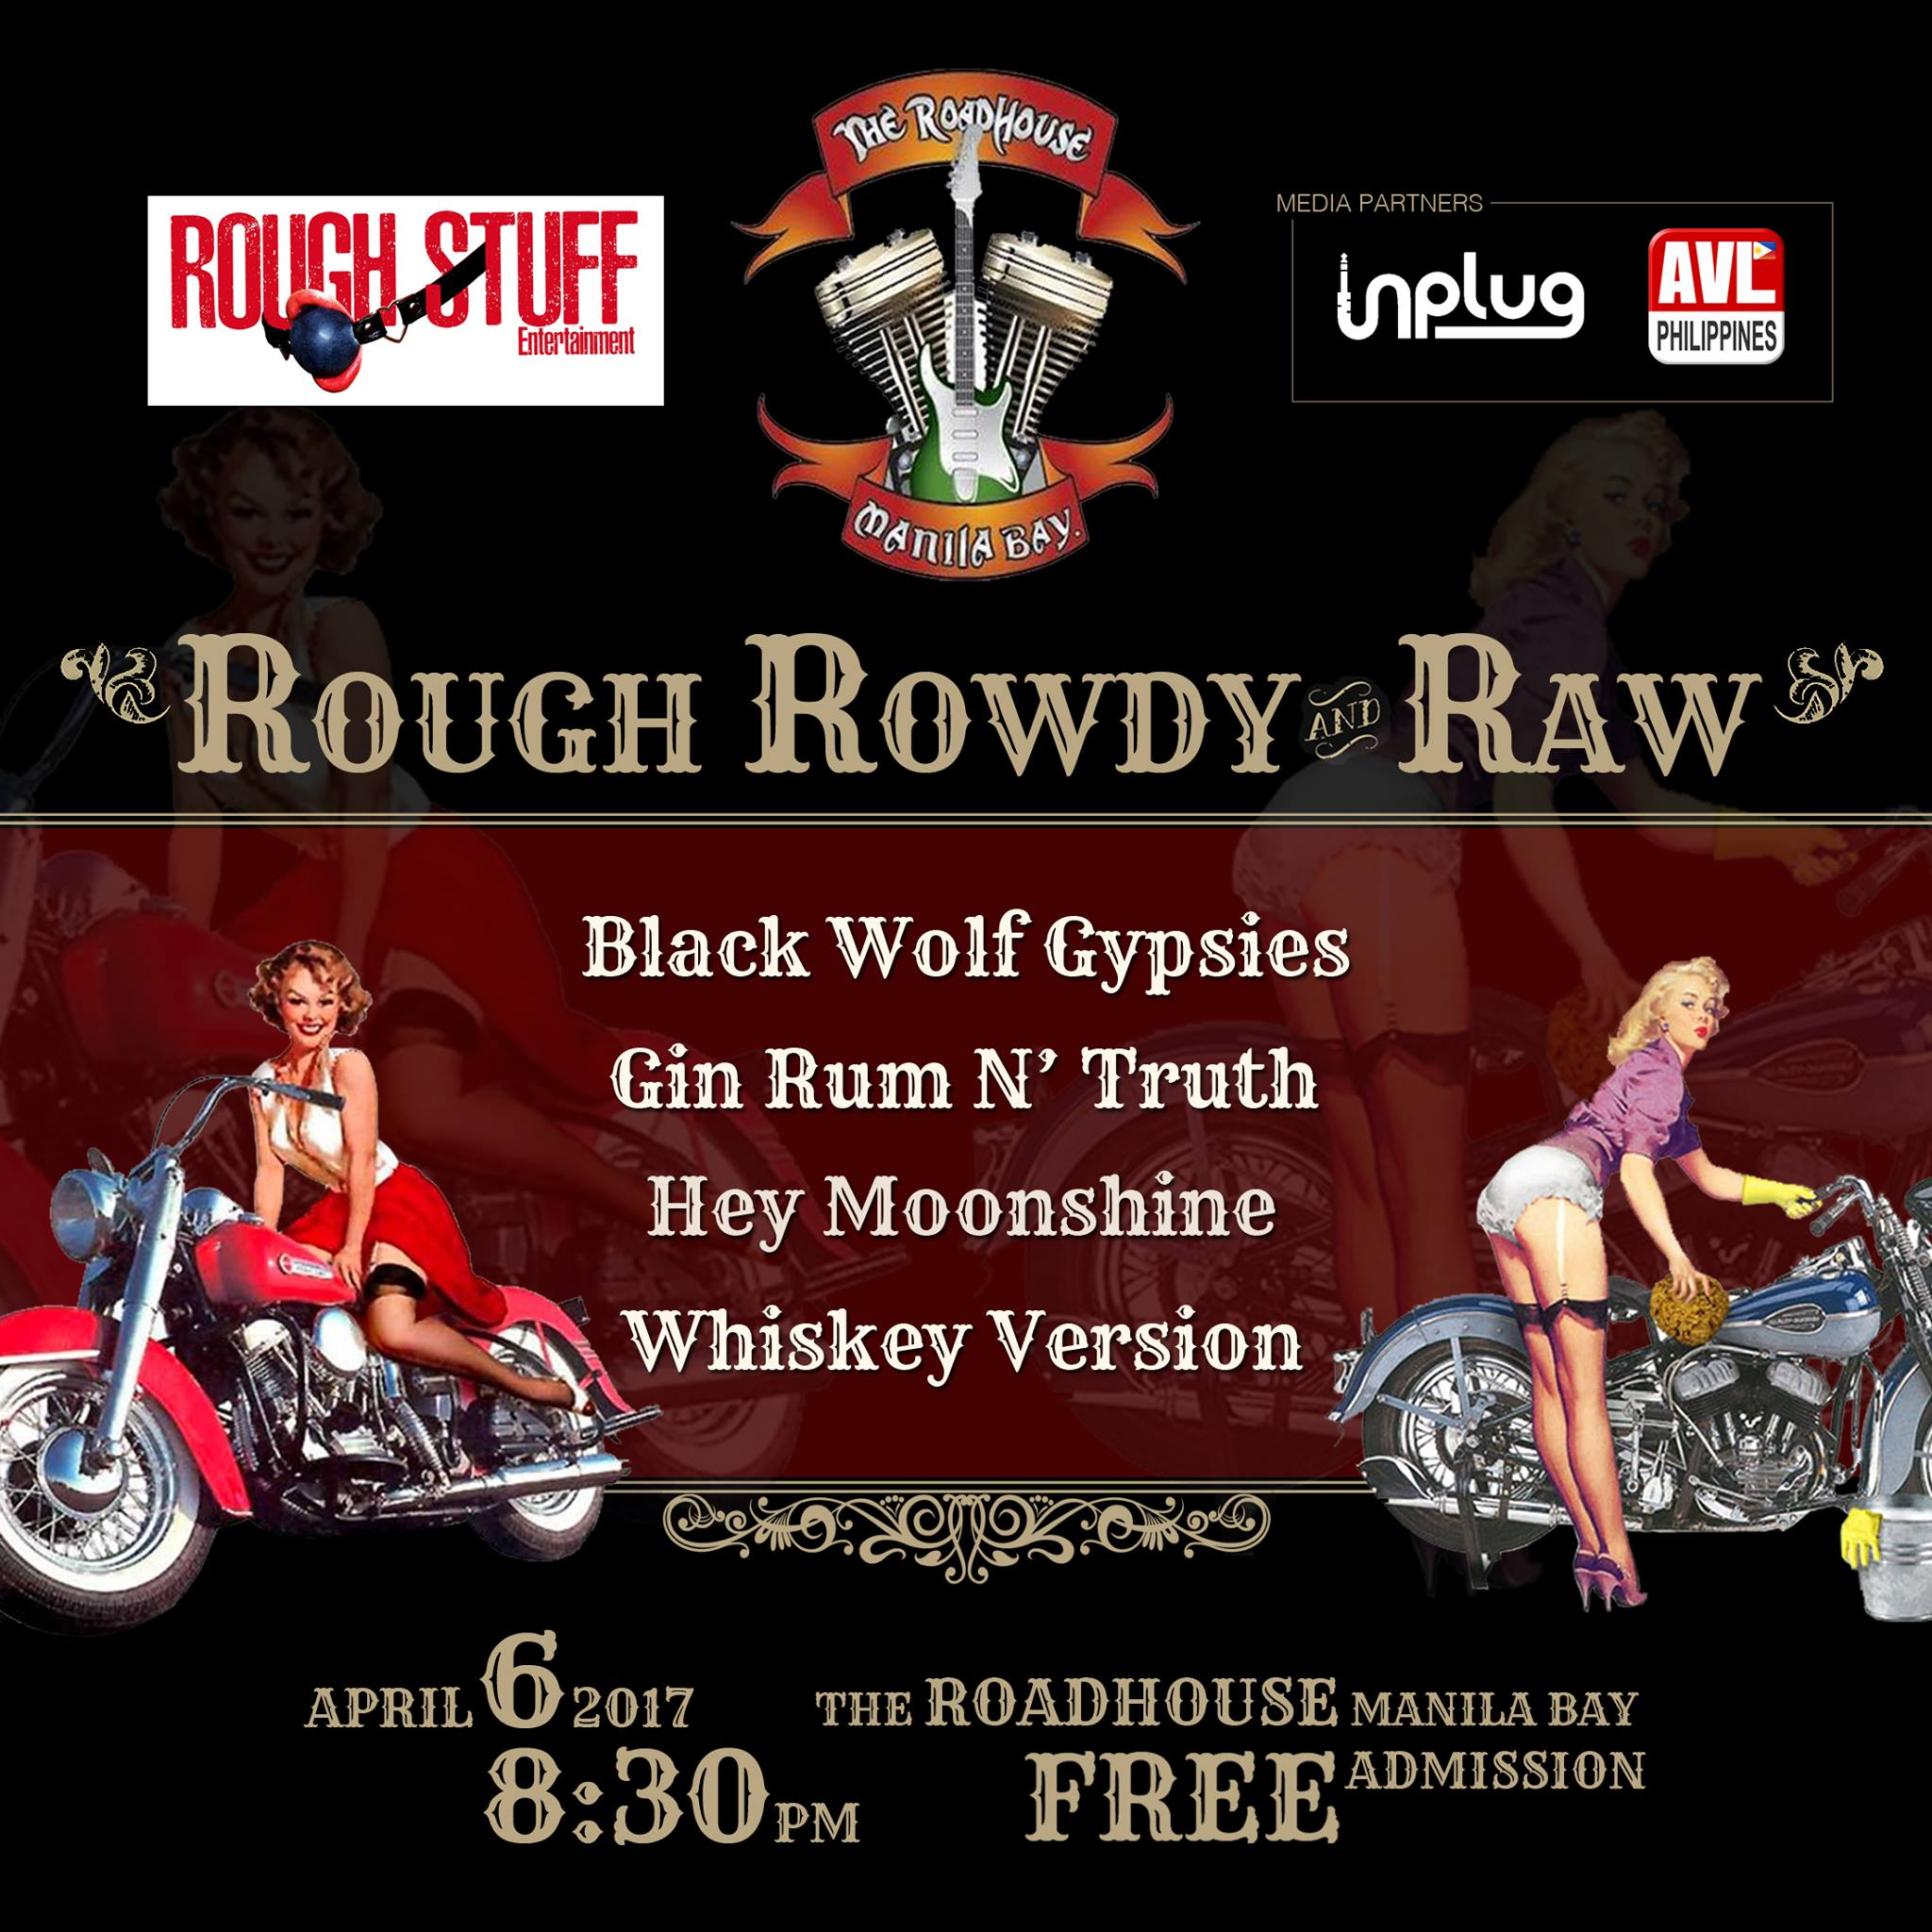 Rough Stuff Entertainment Like This Page · March 23 · Edited · Is it really a taboo that some people really like it ROUGH? Well here's my maiden event featuring the kickass bands Black Wolf Gypsies Music, Gin Rum N'Truth, Hey Moonshine, & Whiskey Version happening on April 6 at the metro's most celebrated music bar and restaurant that is equally rugged, The Roadhouse Manila Bay! In partnership with AVL Times Philippines & Unplug. #RoughRowdyRaw #BlackWolfGypsies #GinRumNTruth #HeyMoonshine #WhiskeyVersion — with Ron Murillo, Christiana Mongaya, Martin B. Salvano, Yok Tano, Dwight Amber Olbes, Mike Twain, Mey Reyes, Bryan Pernis, John Kurdt, Snide Rosel, Gian Sison, Joboss Cambodia, Inigo Mortel, Rhose Orpilla, Gin Rum N'Truth, Carlo Ybanez, Es Reyes, Ria Panopio Bautista, Clarence Anthony and Norlyn Mahaguay Tano at The Roadhouse Manila Bay.